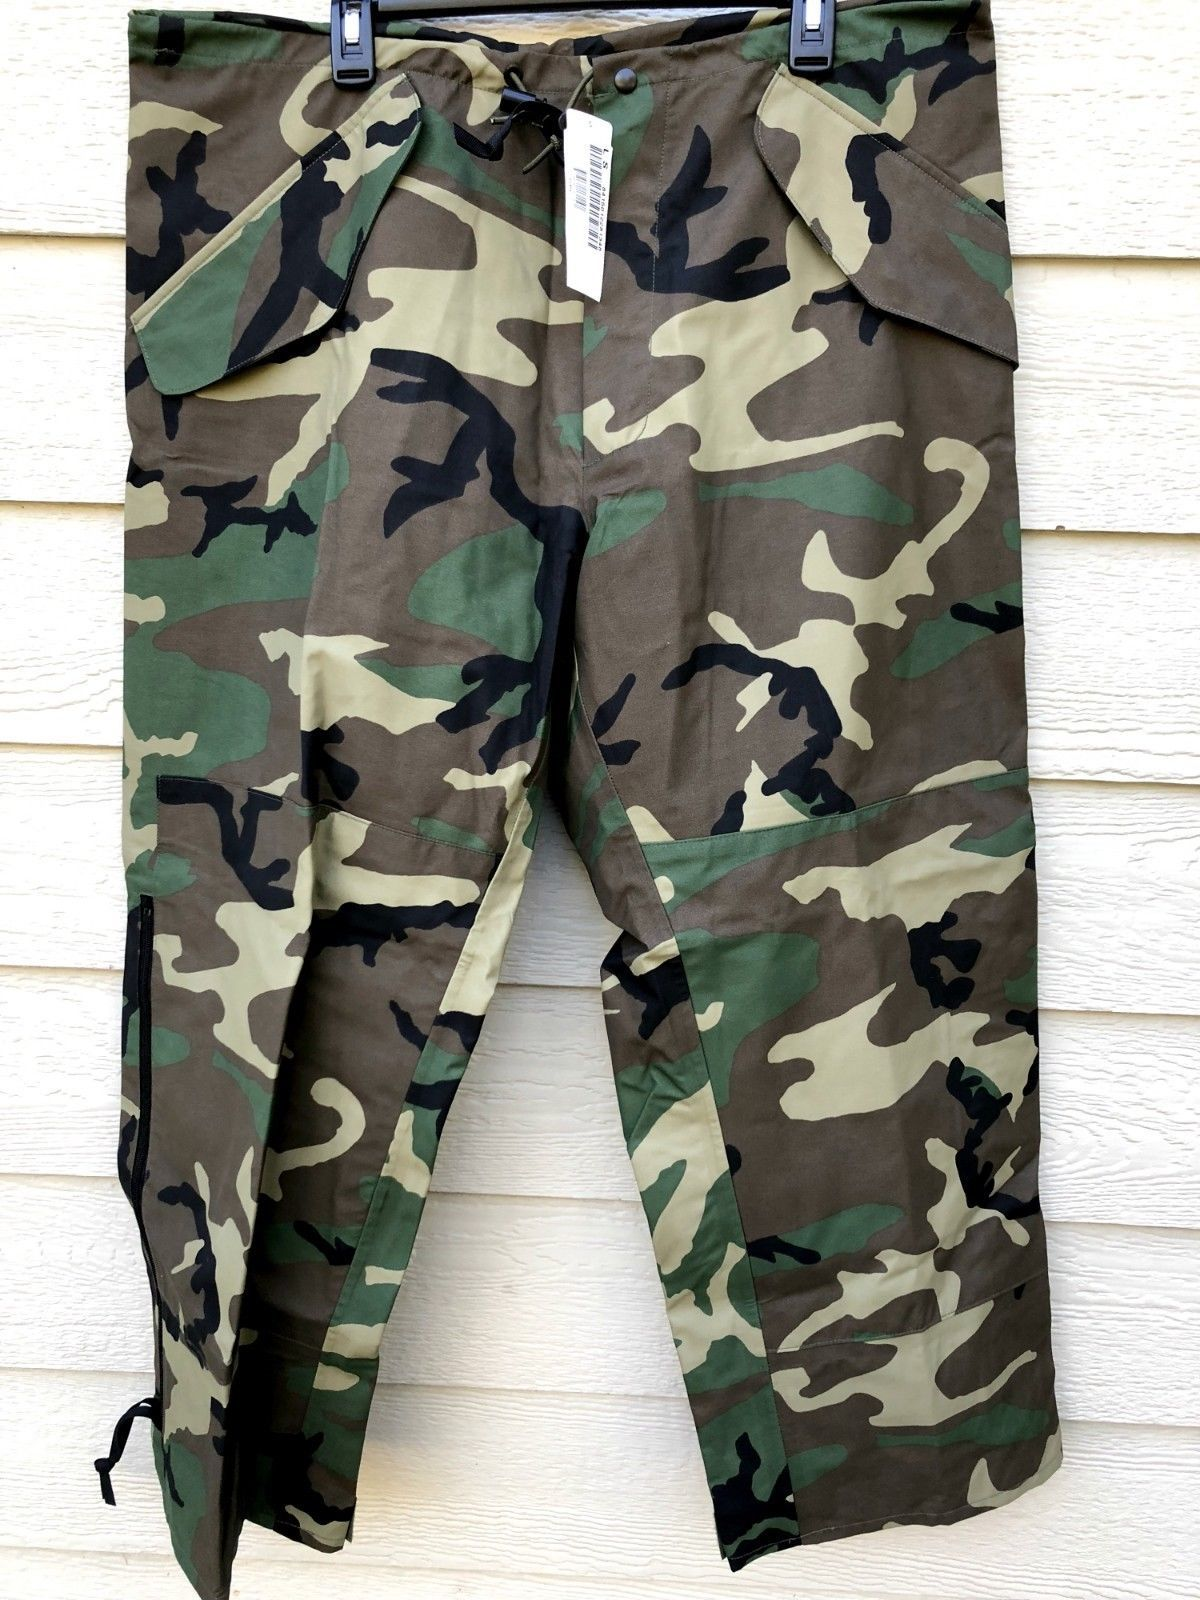 New US Army Cold Wet Weather Gen 1 ECWCS DESERT Goretex Pants Trousers